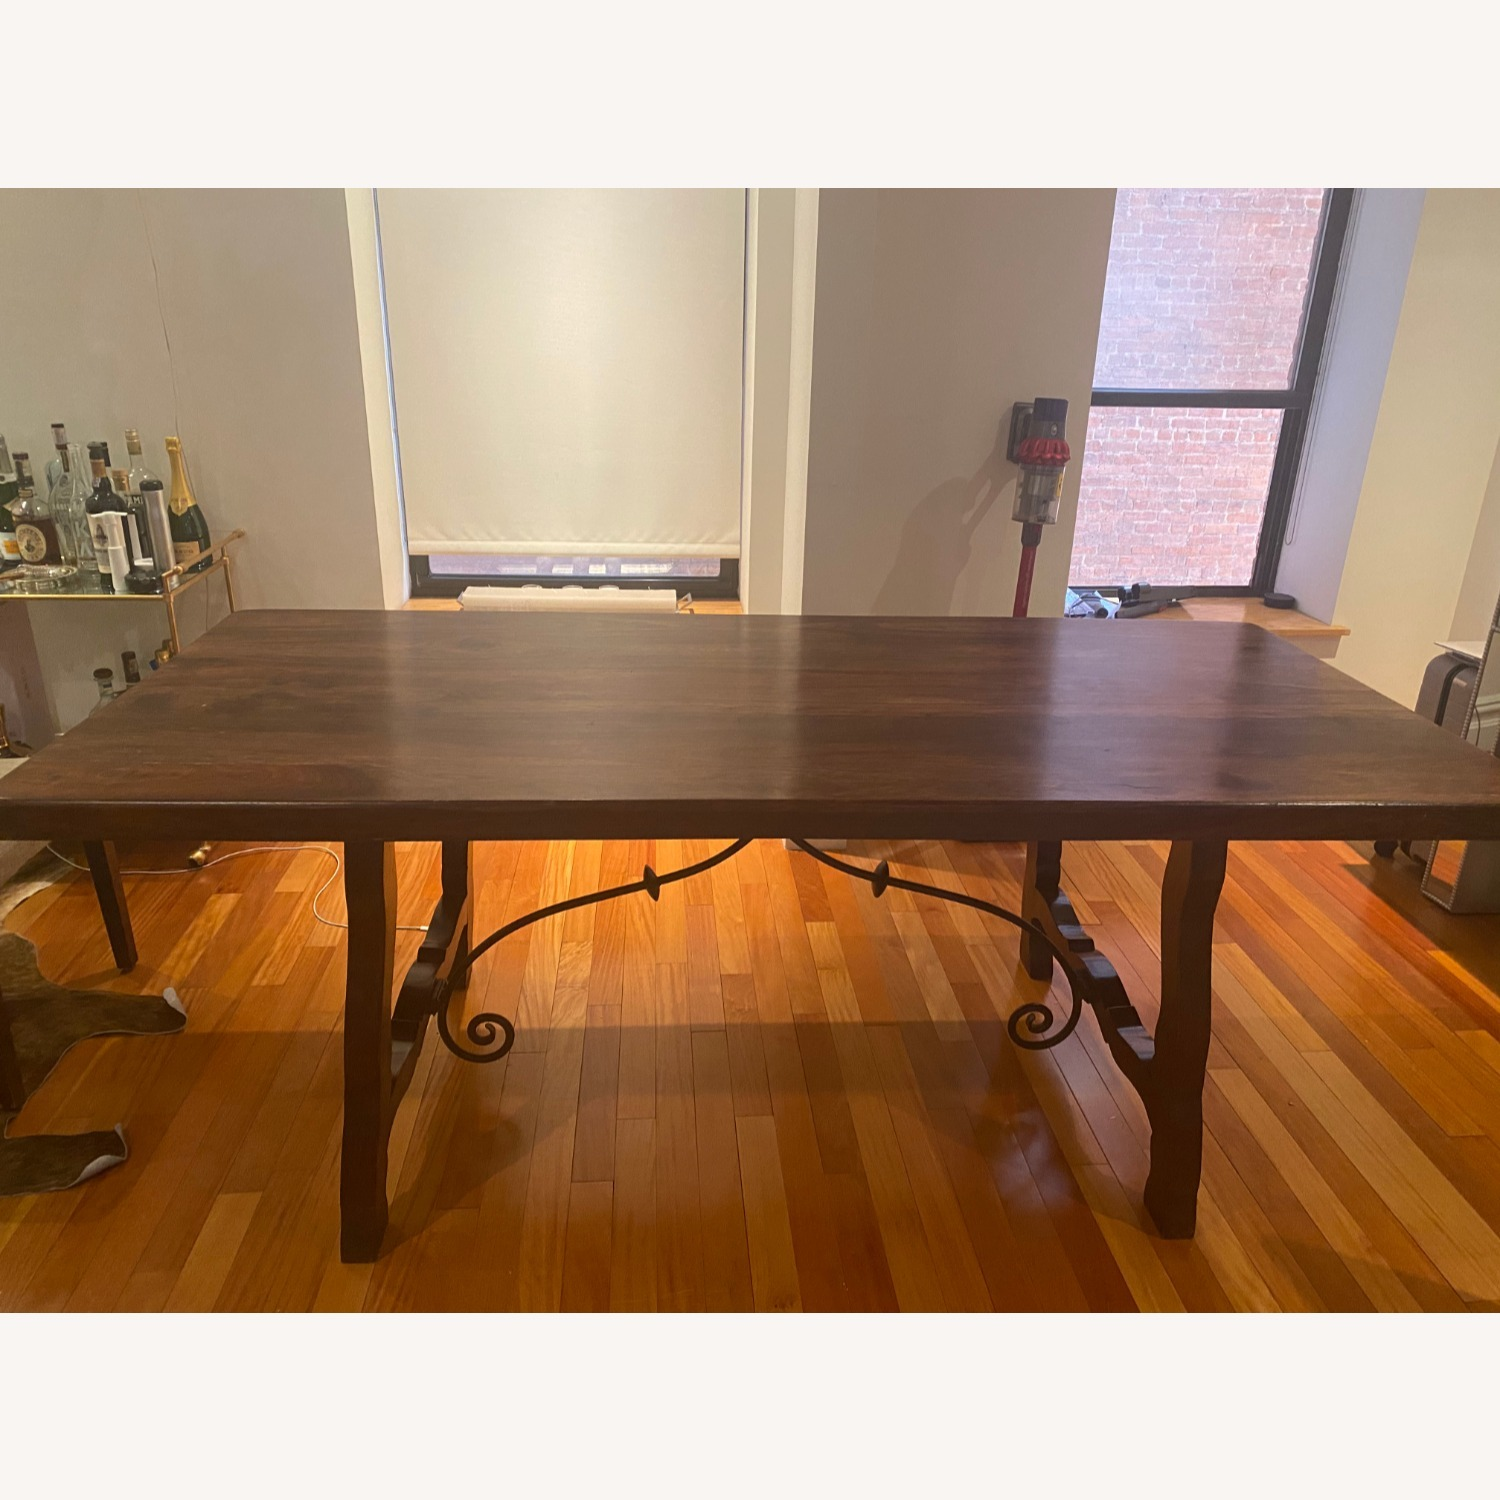 Pier 1 Imports Dark Wood Dining Table, Seats 6 - image-10